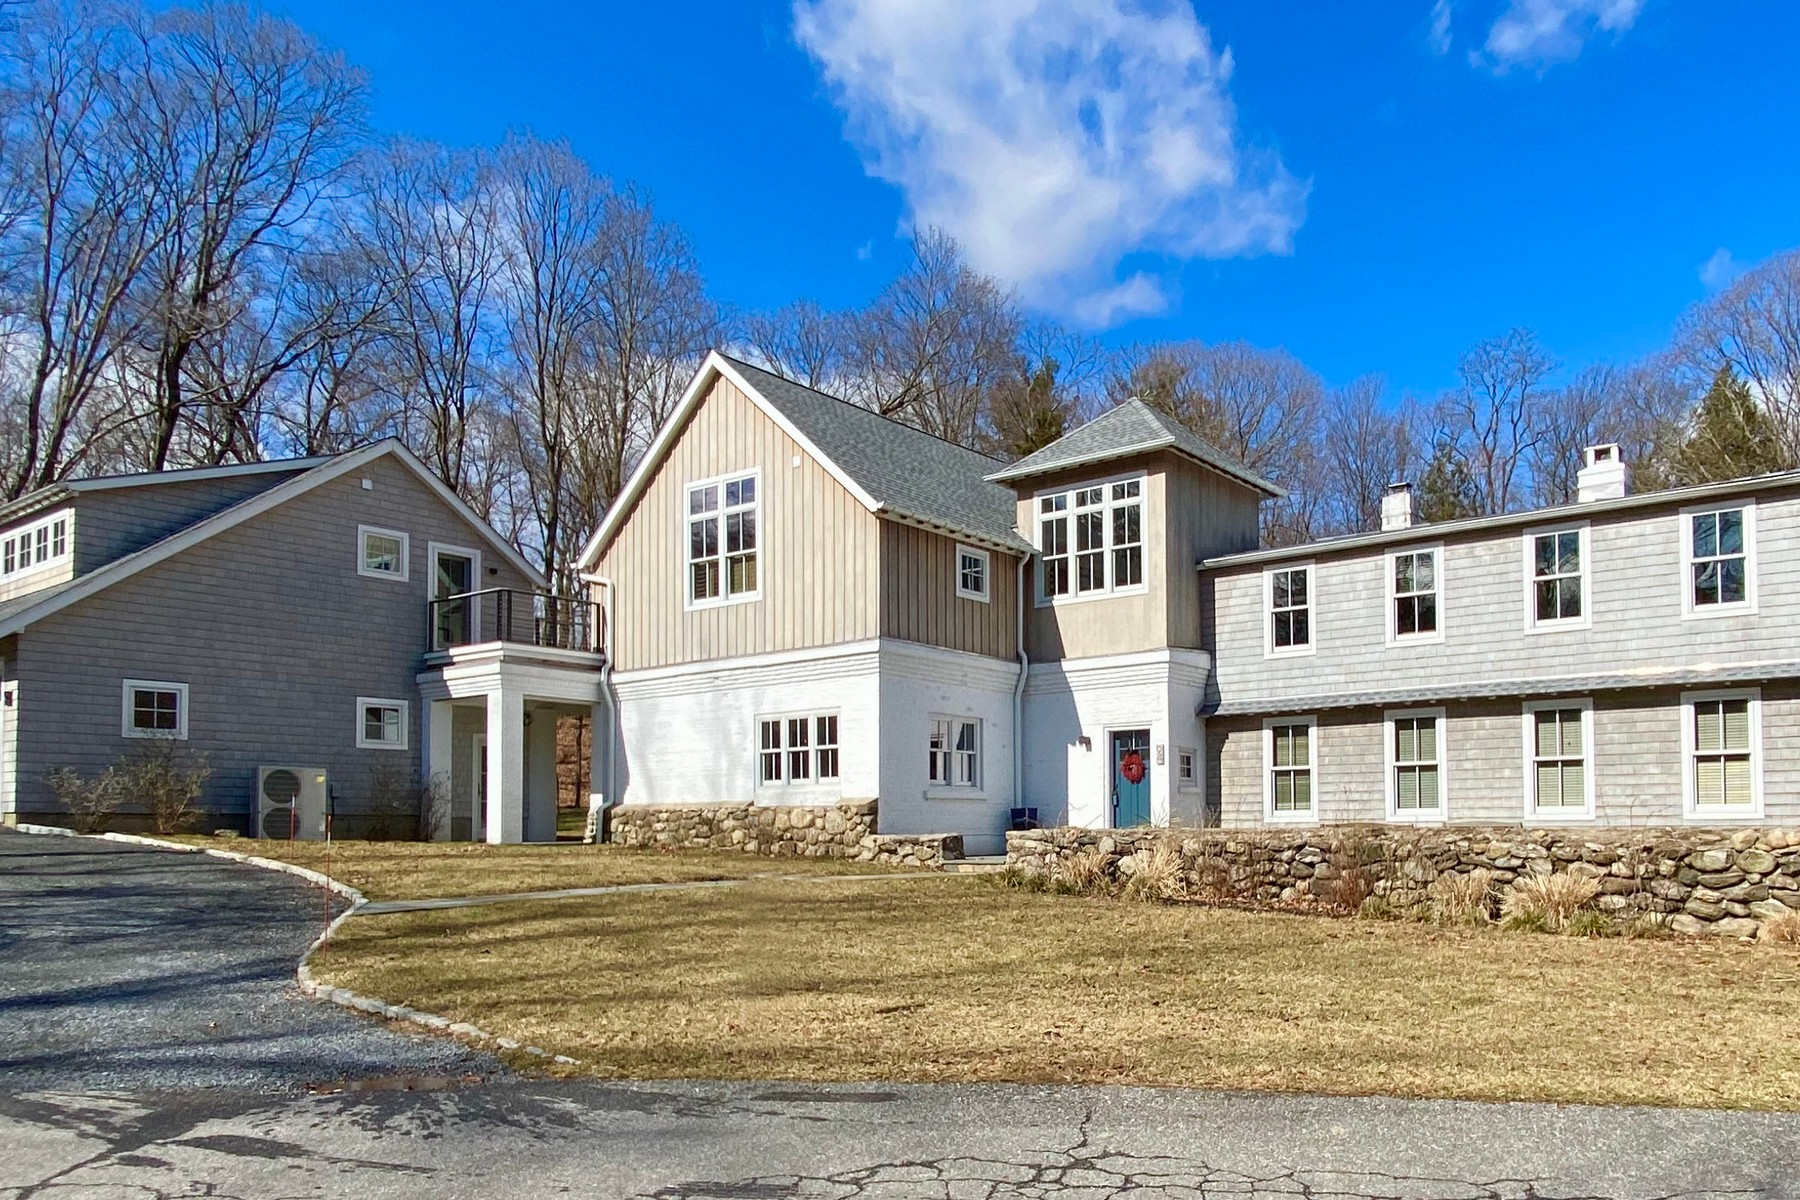 Single Family Home for sale in 94 Old Farm Road N, Chappaqua, NY ,10514